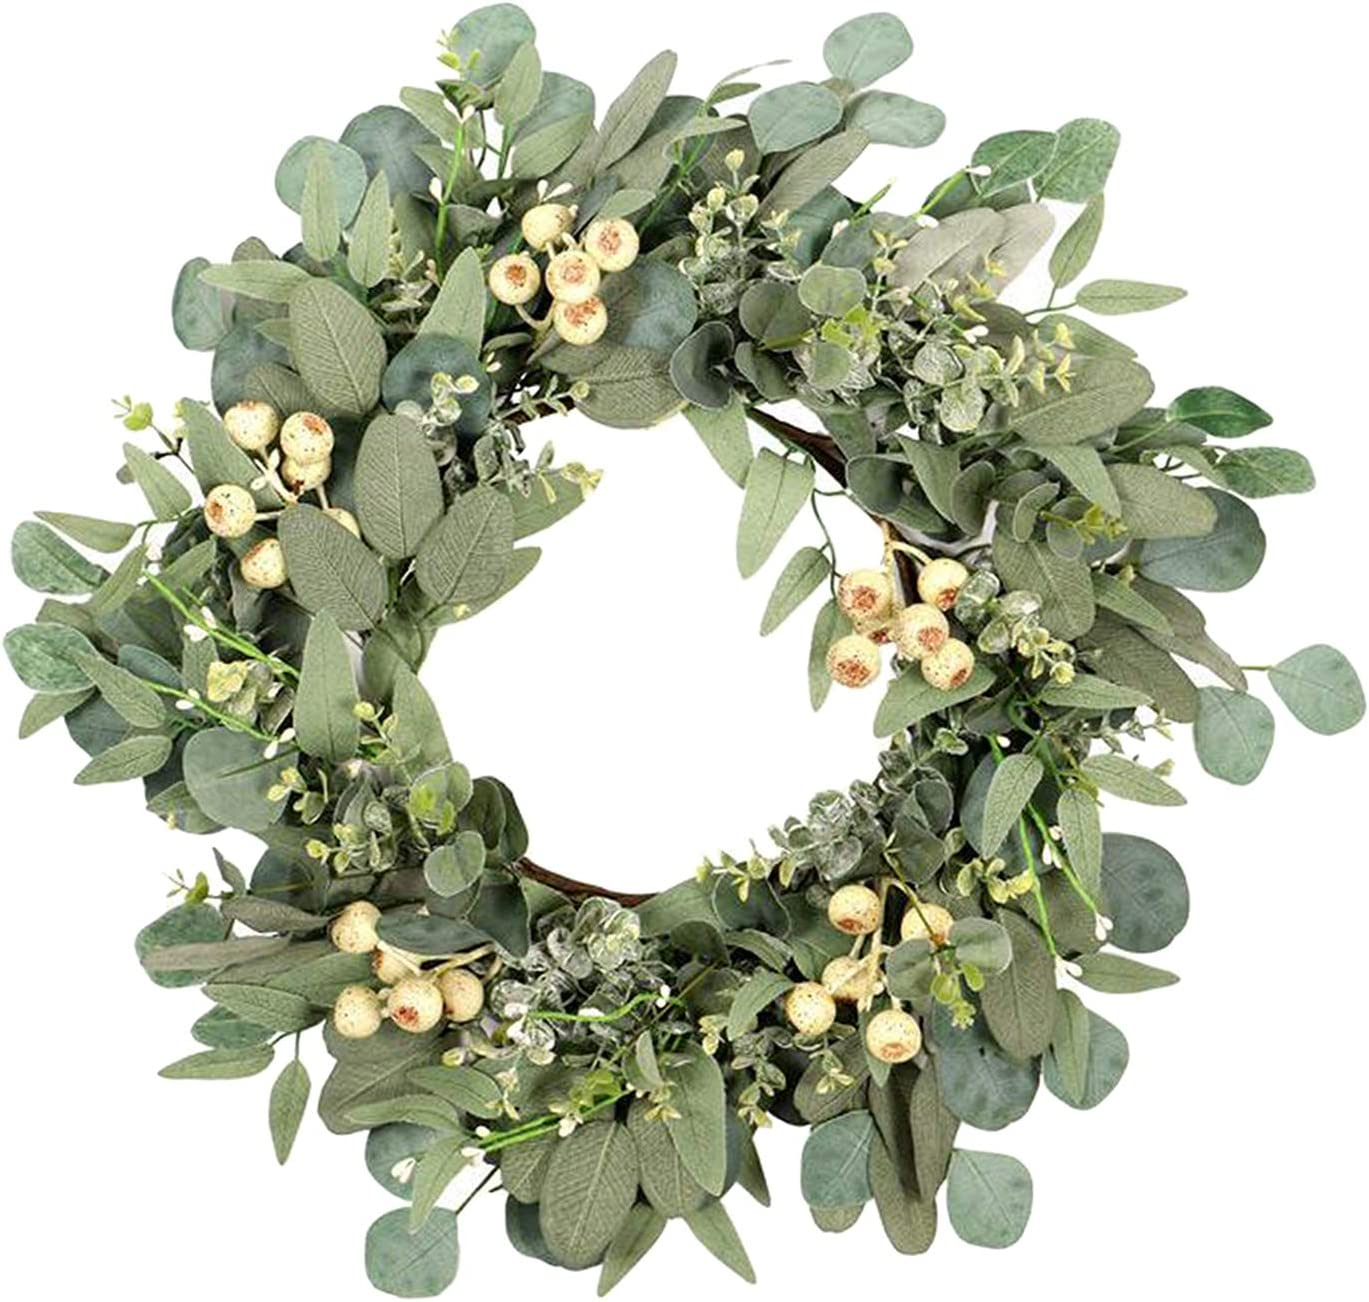 Flameer Artificial Front Door Wreath 22 Large Green Leaves Wreath Farmhouse Greenery Garland for Hanging Wall Window Party Decoration